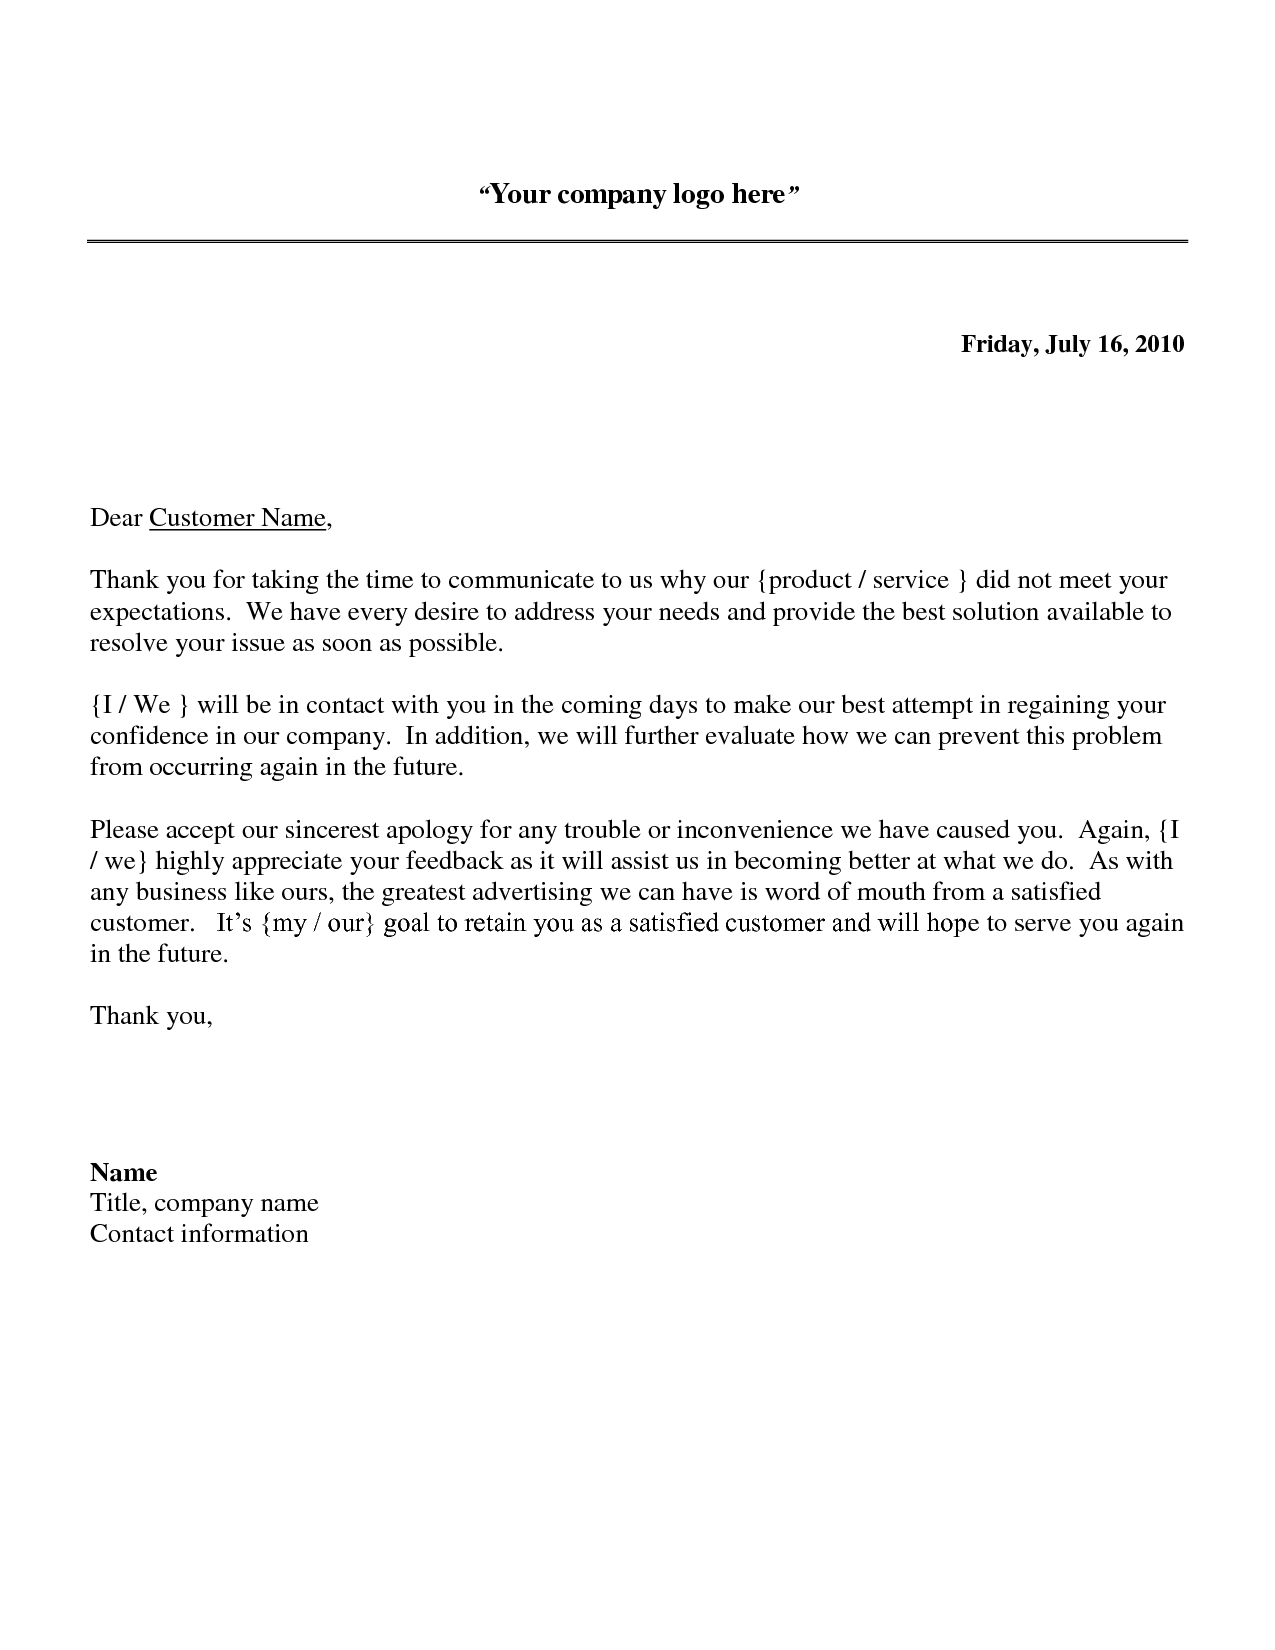 business apology letter sample as doc images frompoletter business apology letter sample as doc images frompoletter of apology business letter sample